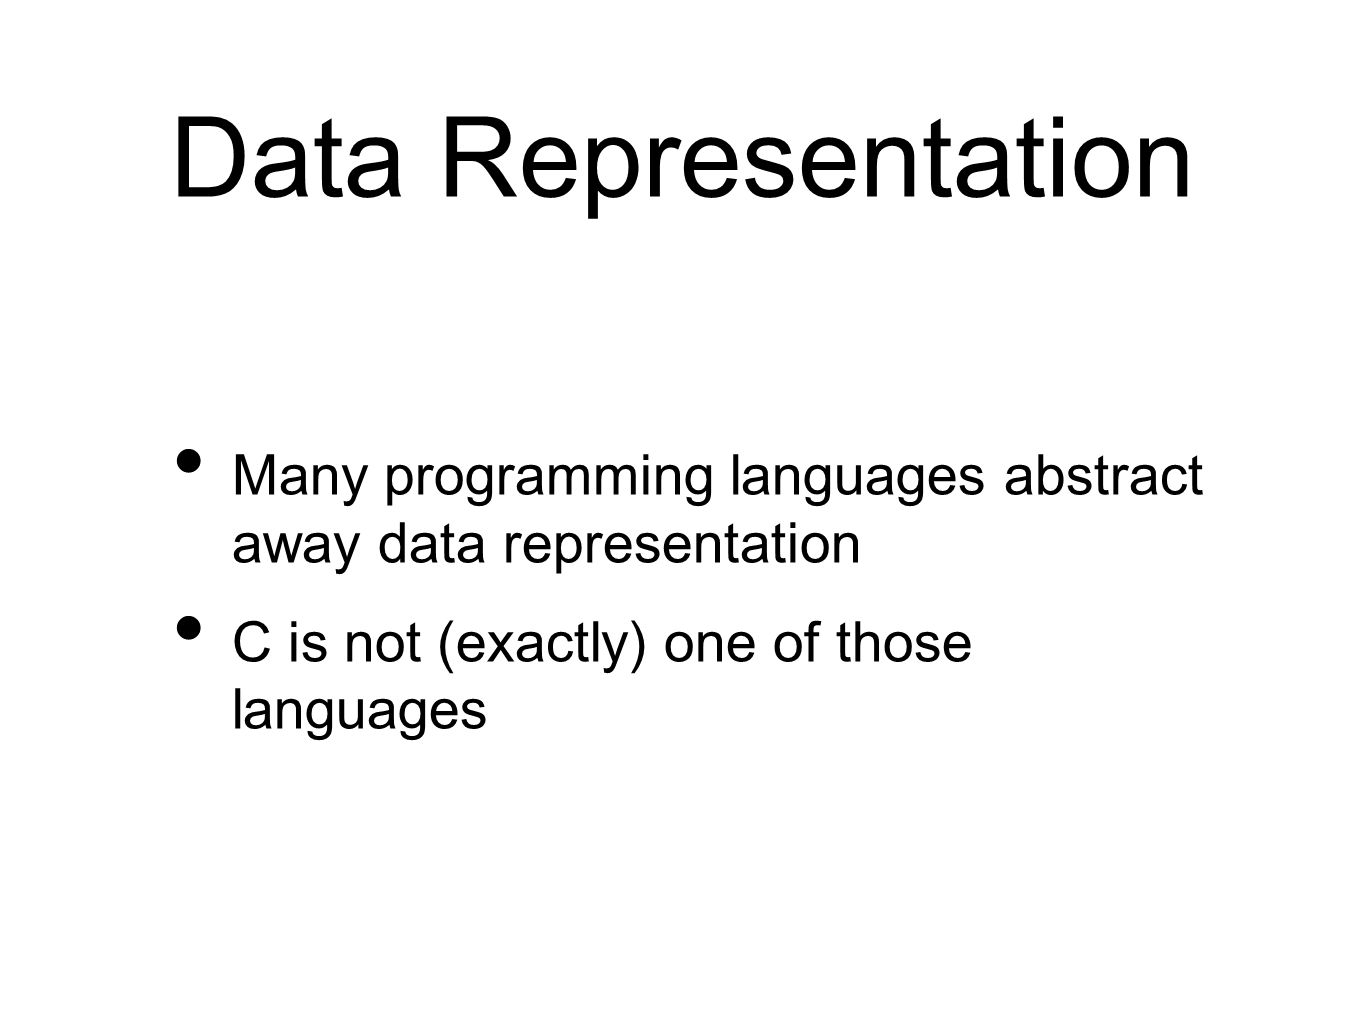 Many programming languages abstract away data representation C is not (exactly) one of those languages